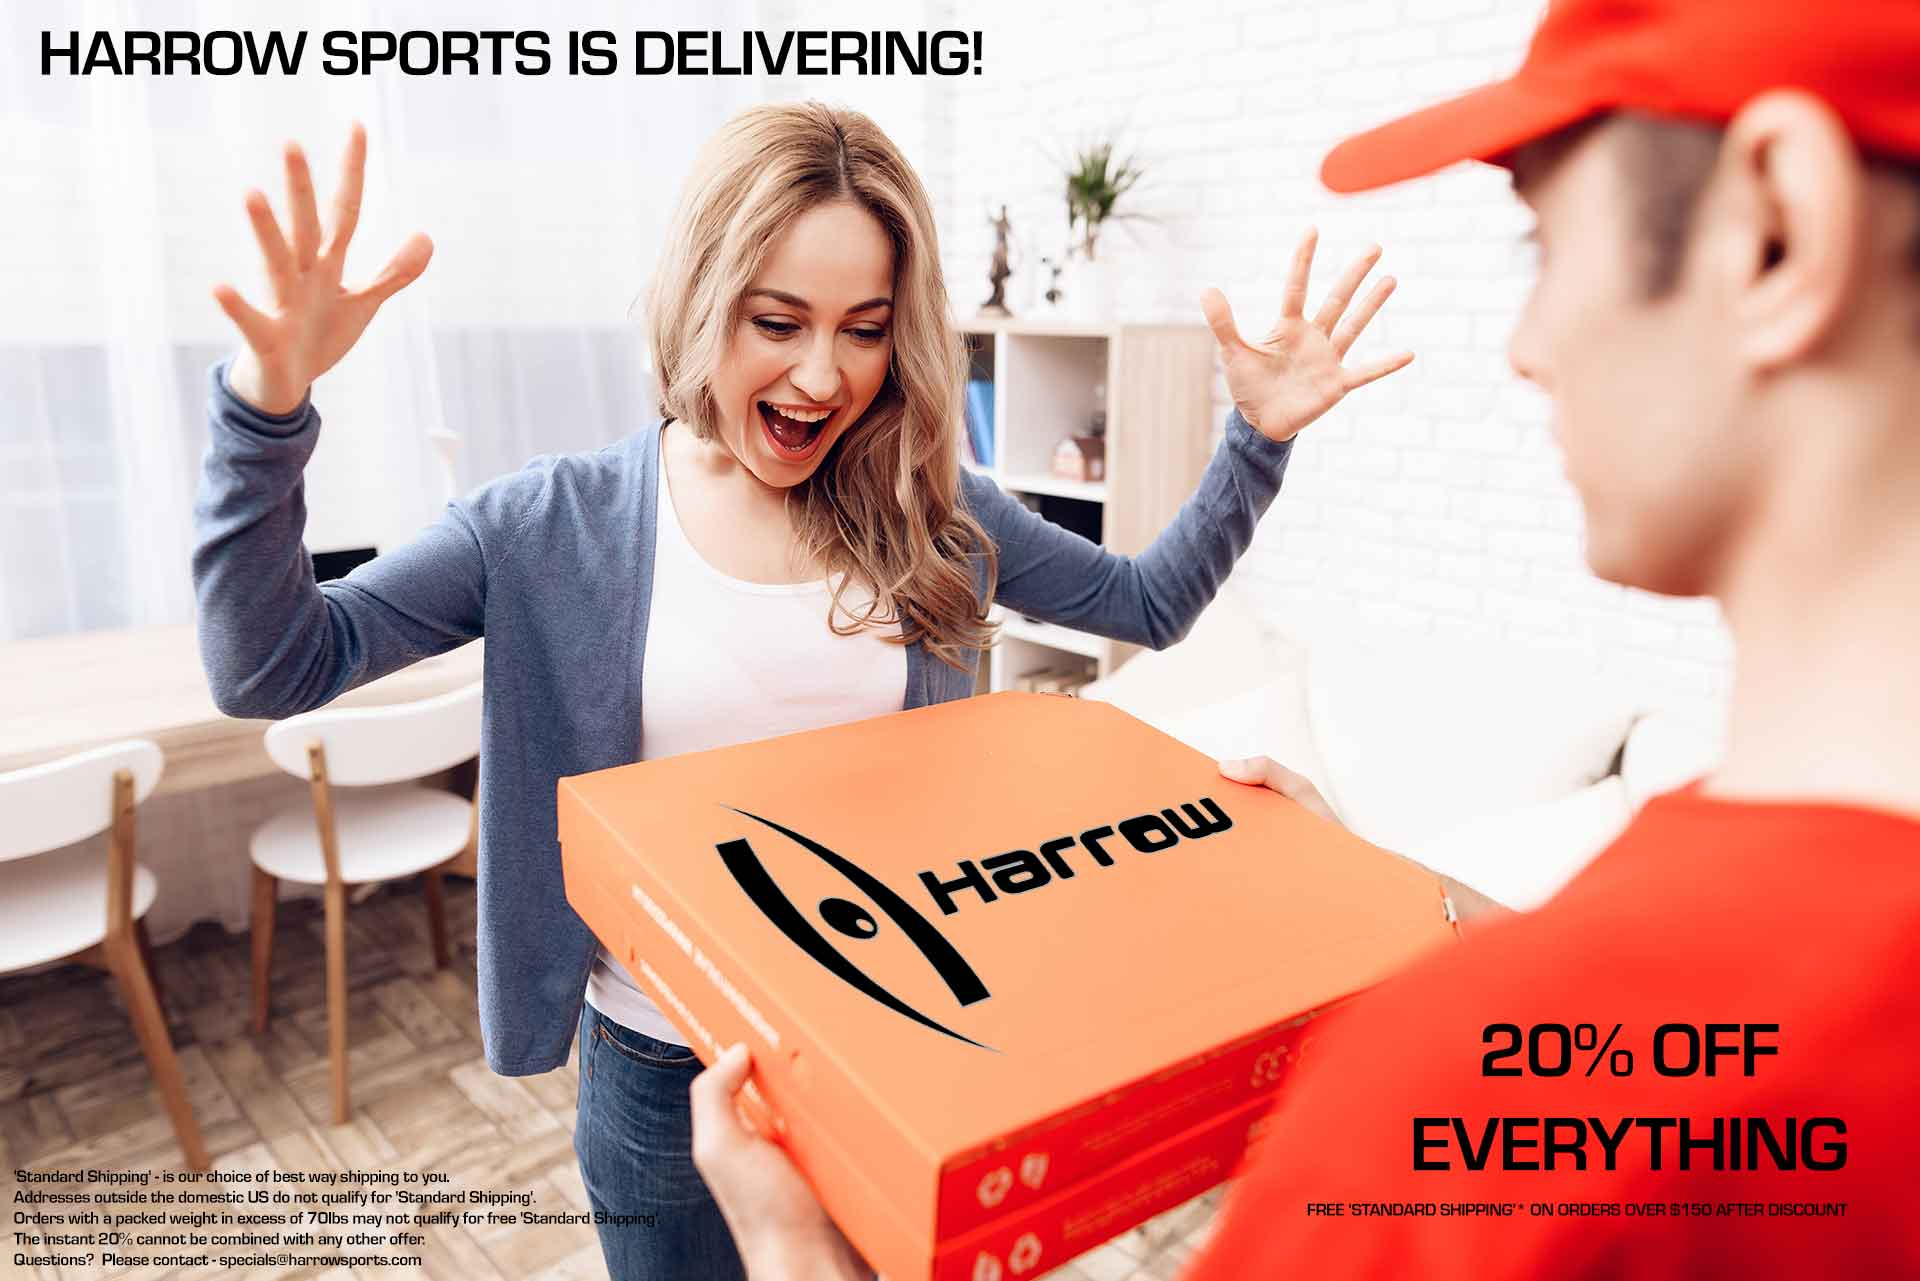 Harrow Sports is Delivering - 20% Off Everything